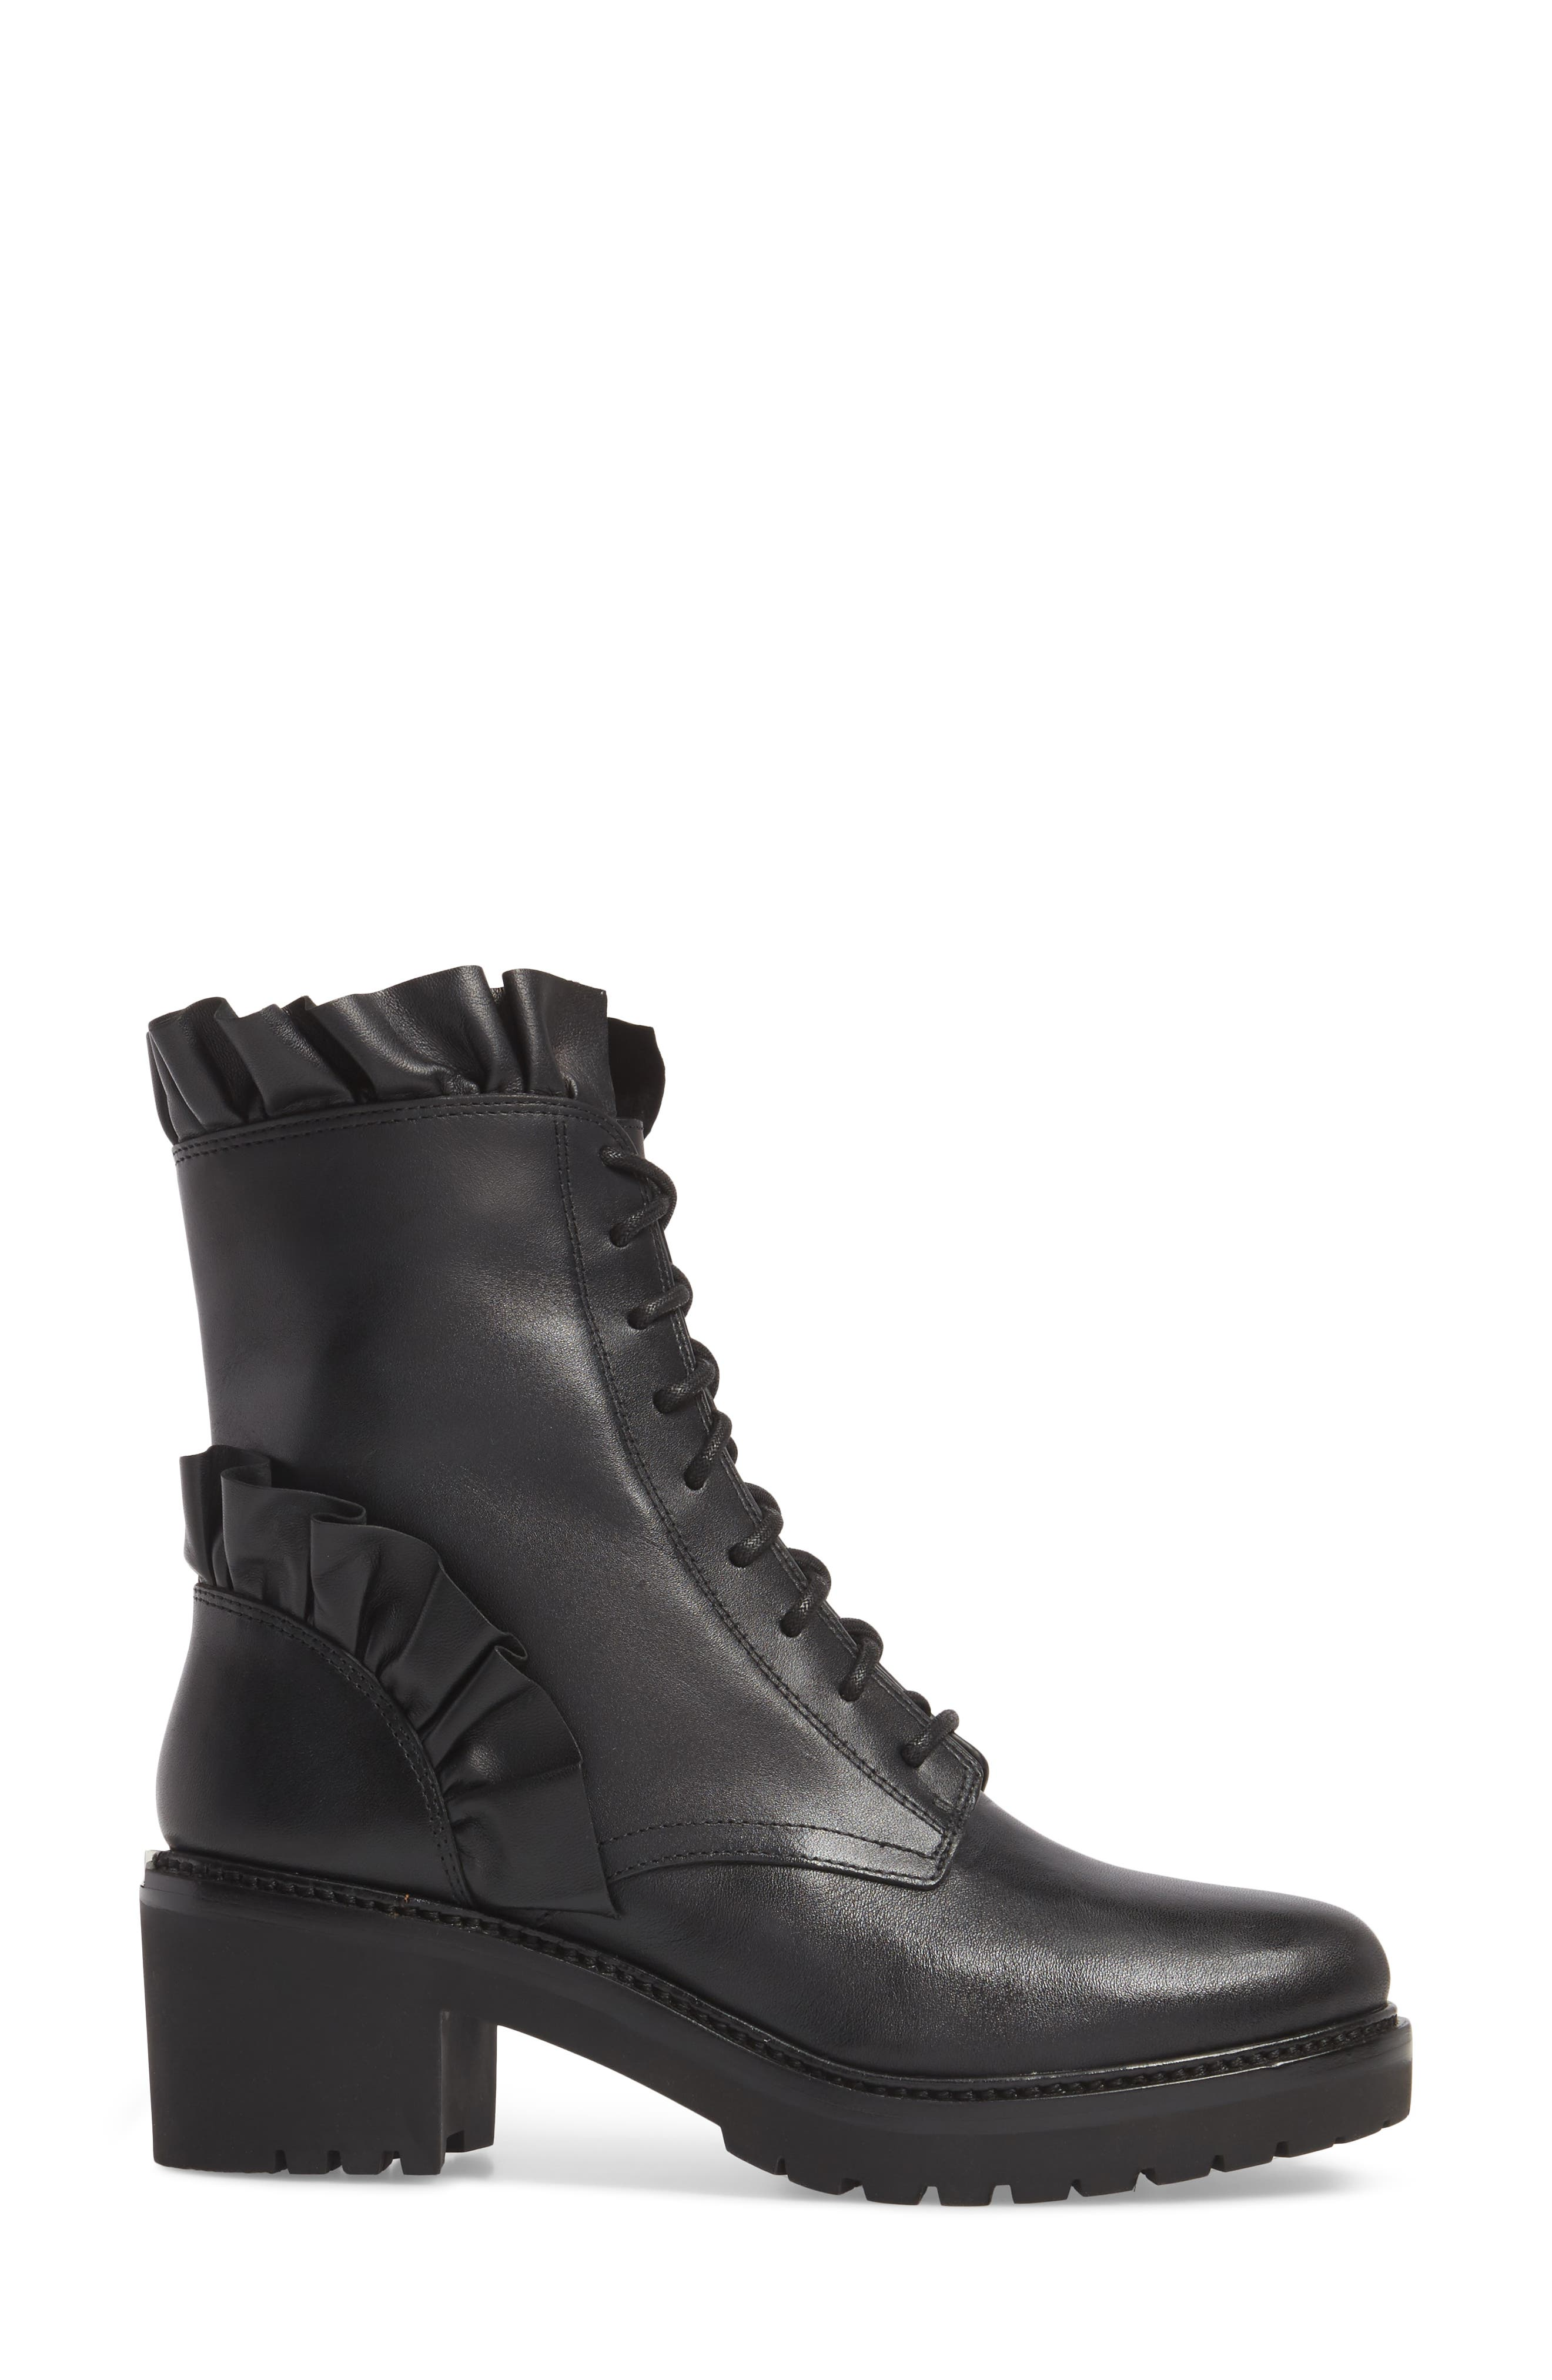 Bella Boot,                             Alternate thumbnail 3, color,                             Black Nappa Leather